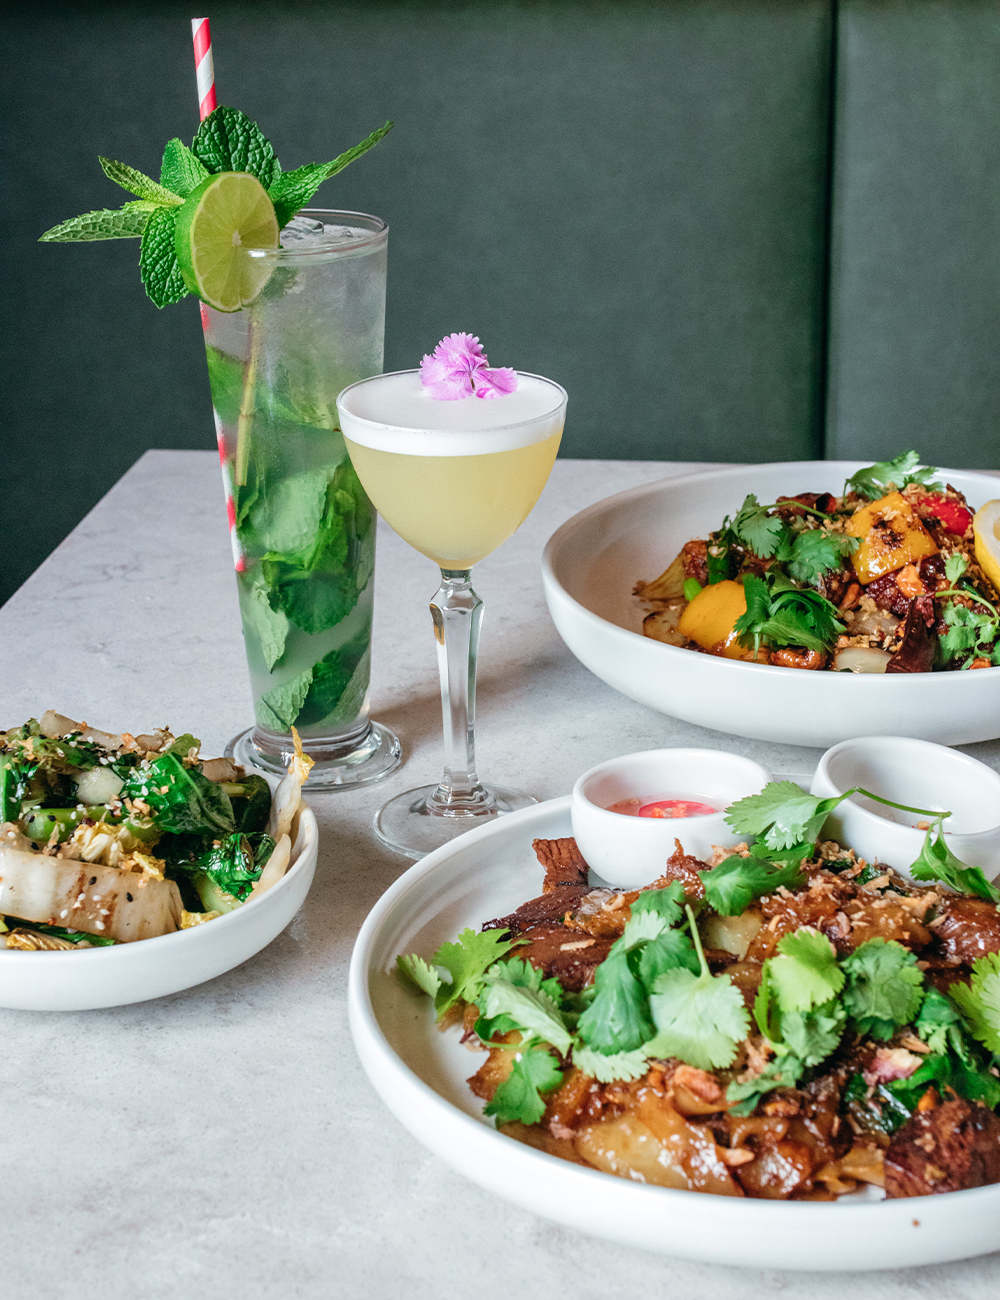 several dishes of food and two cocktails on a table